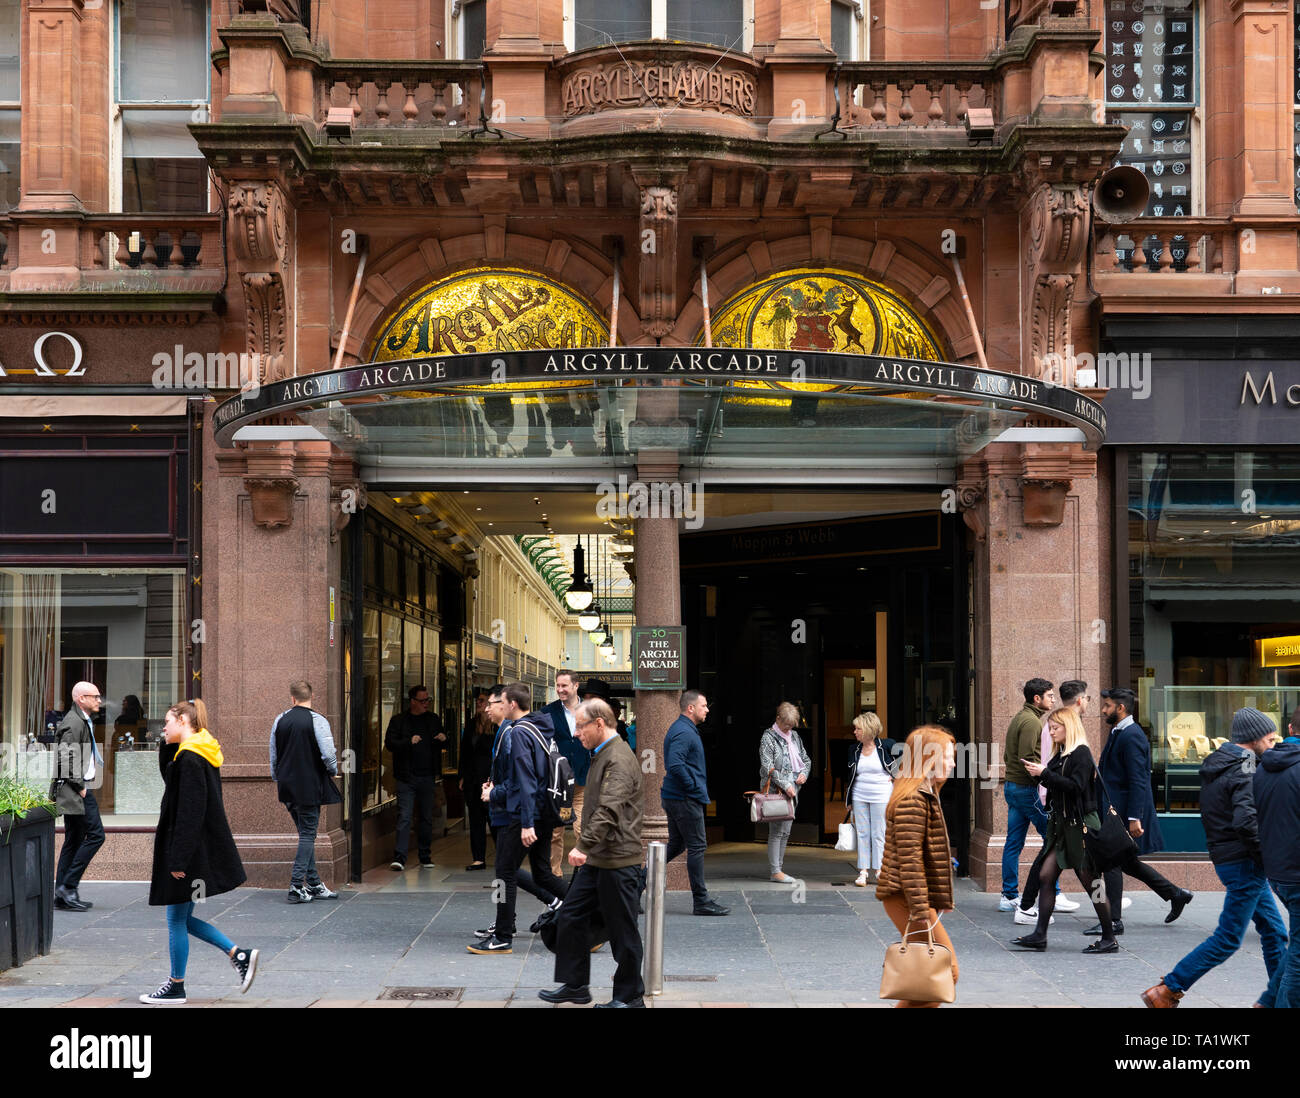 Exterior of historic Argyll Arcade with many jewellery shops in Glasgow city Centre, Scotland, UK - Stock Image